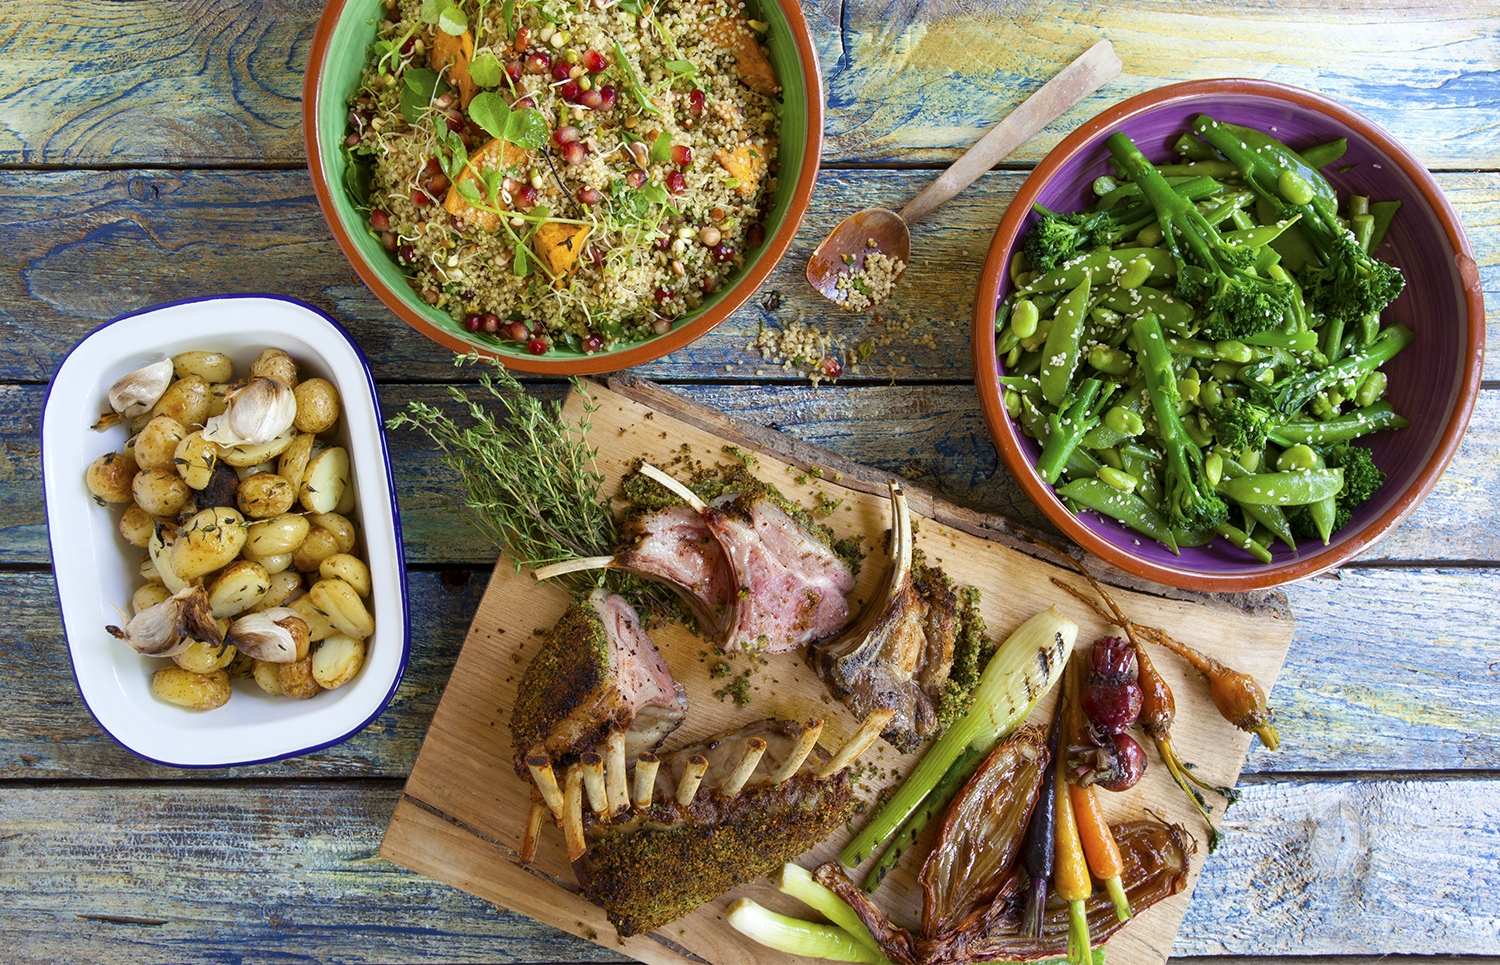 Rack of lamb noisette with a crusty bread crumble, garlic & rosemary, served with a shallots rosemary jus (served 4 guests)